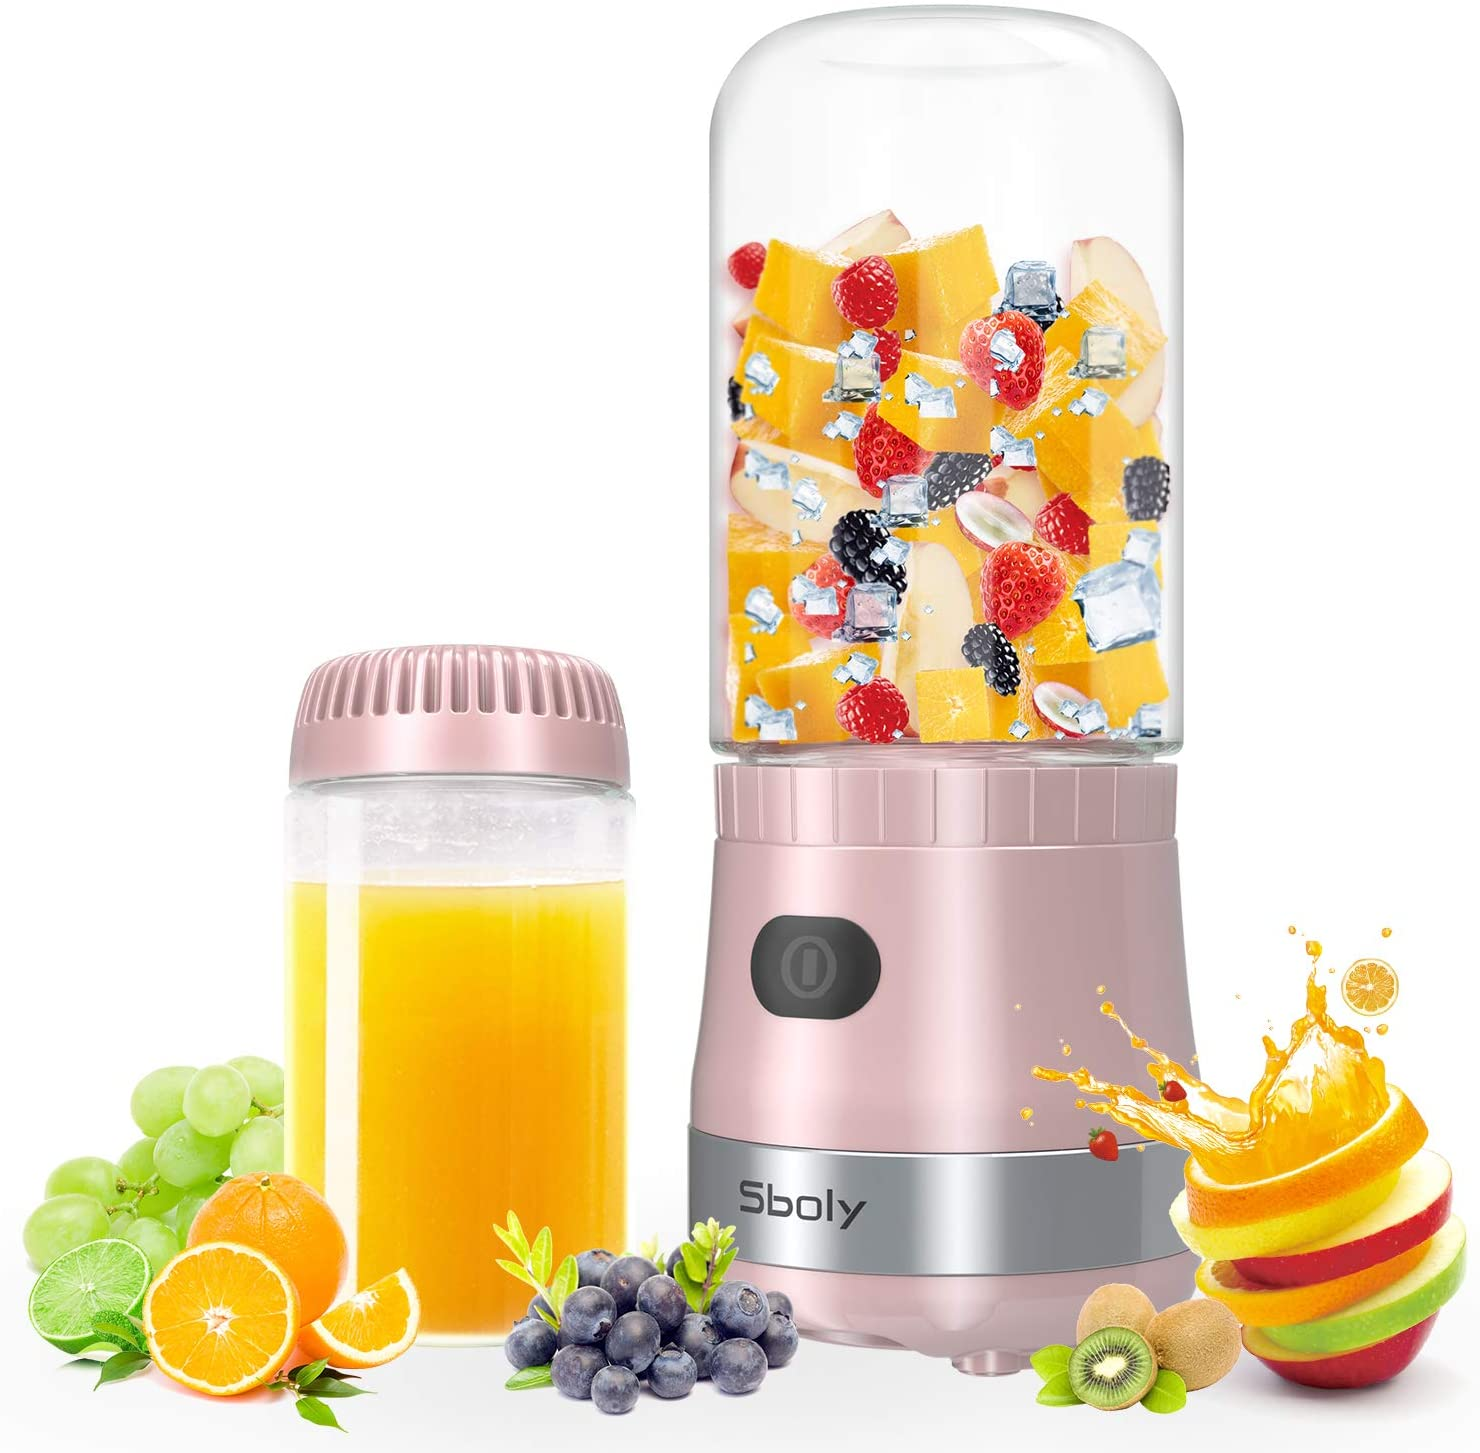 Sboly Portable Mini Blender Pink Color USB Mixer Juice and Smoothies Maker With 12 oz Cups